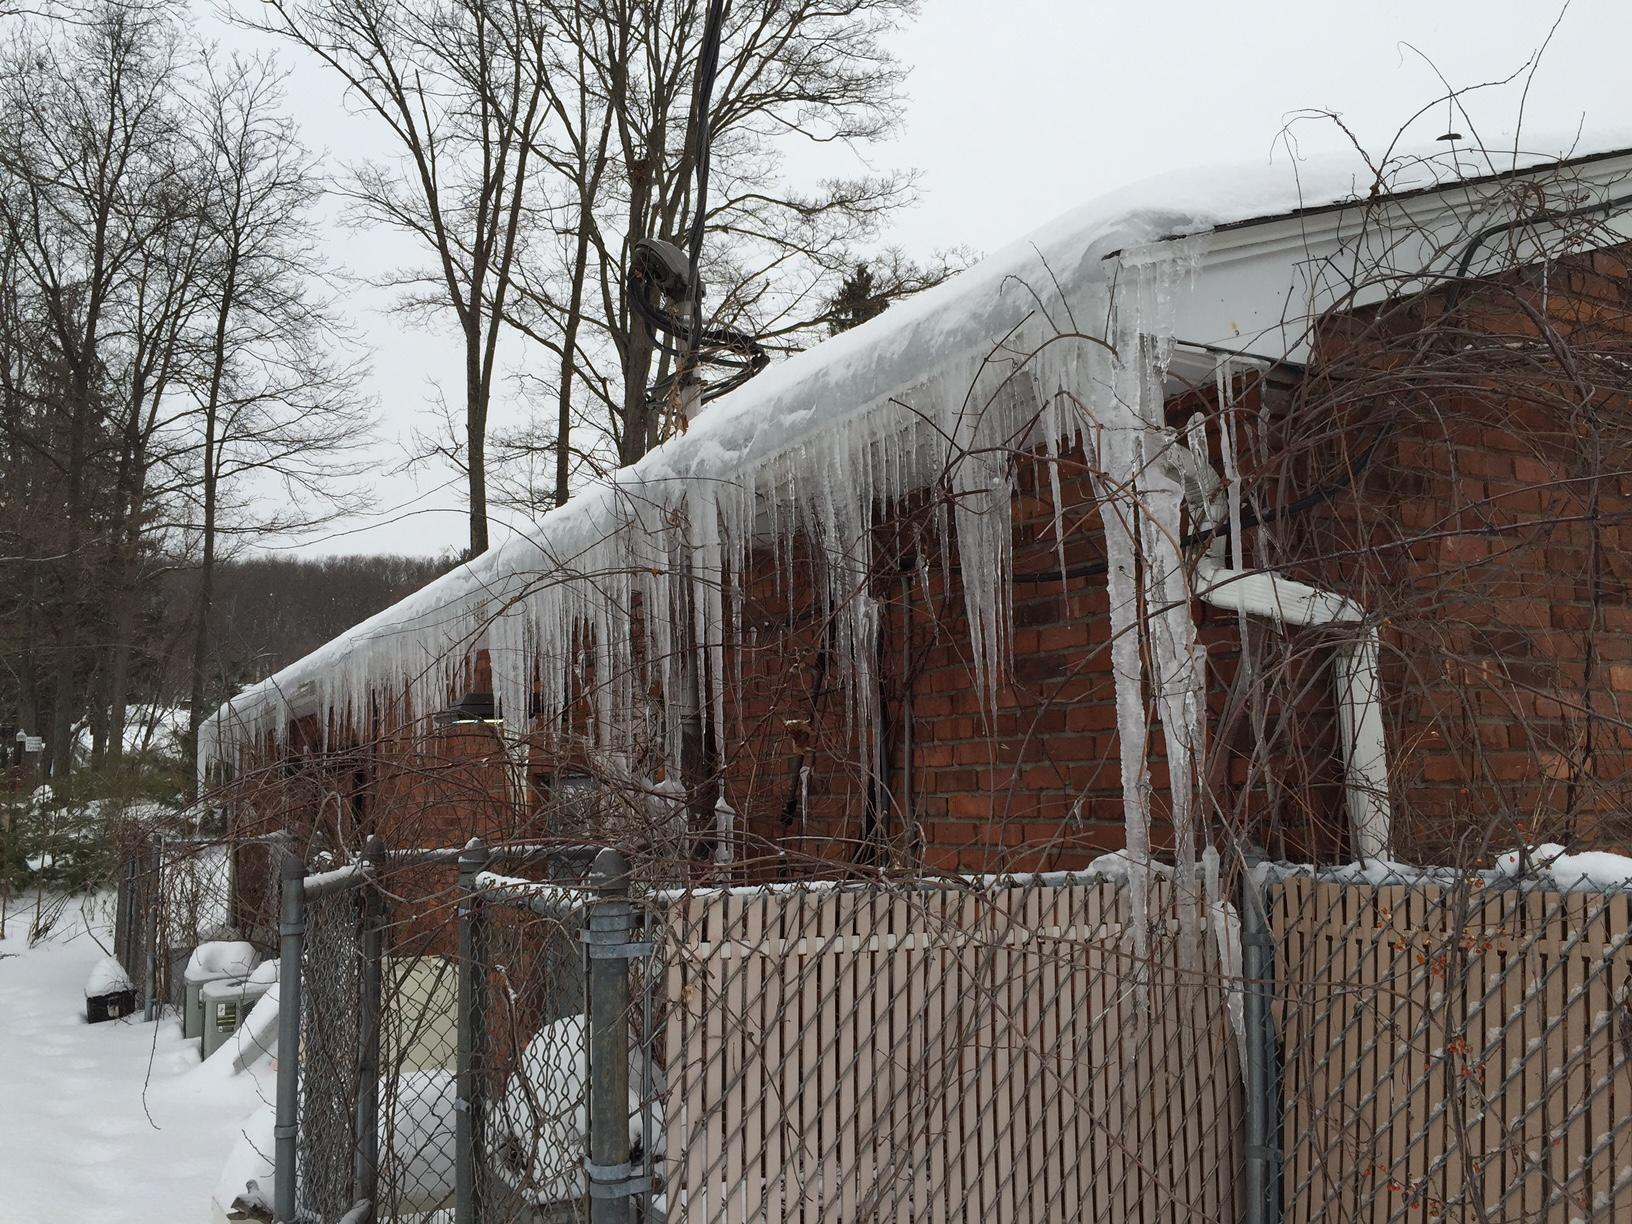 Severe ice build-up